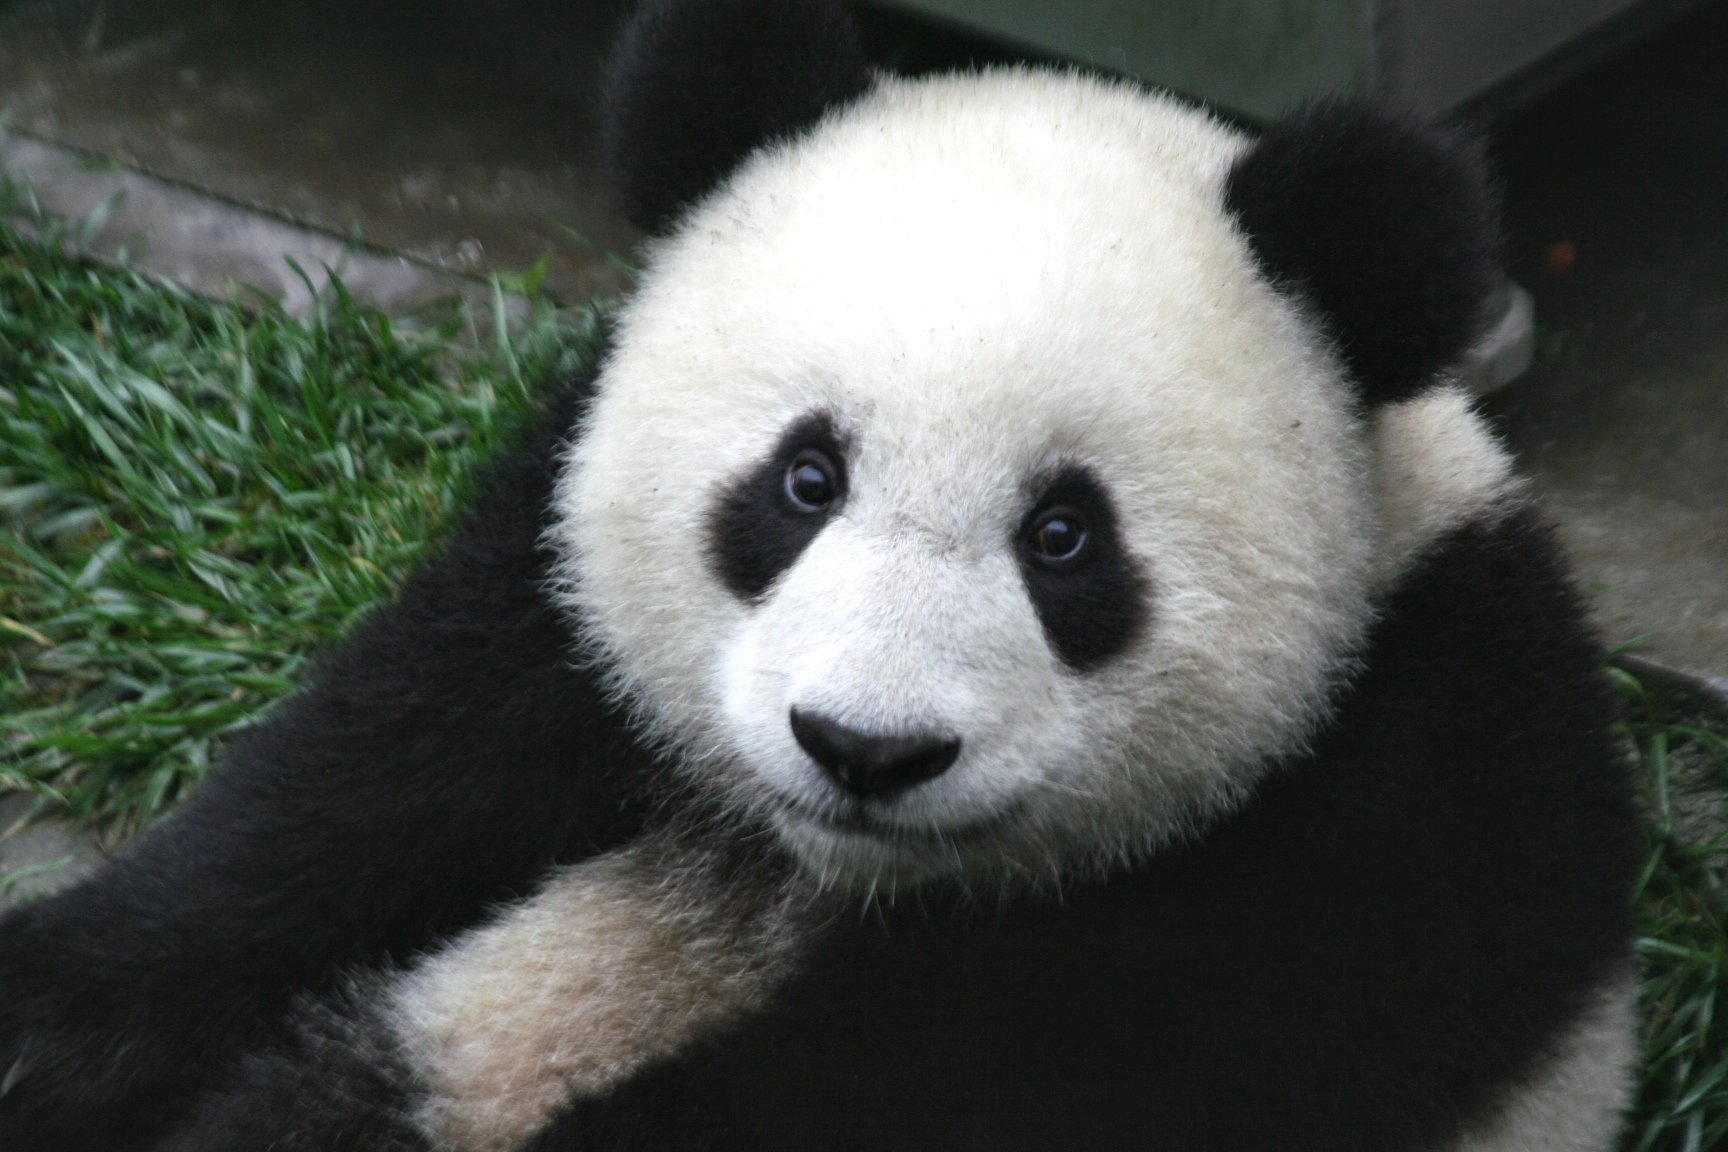 Buckets of Cute: Pandas at Sichuan Giant Panda Sanctuaries ...